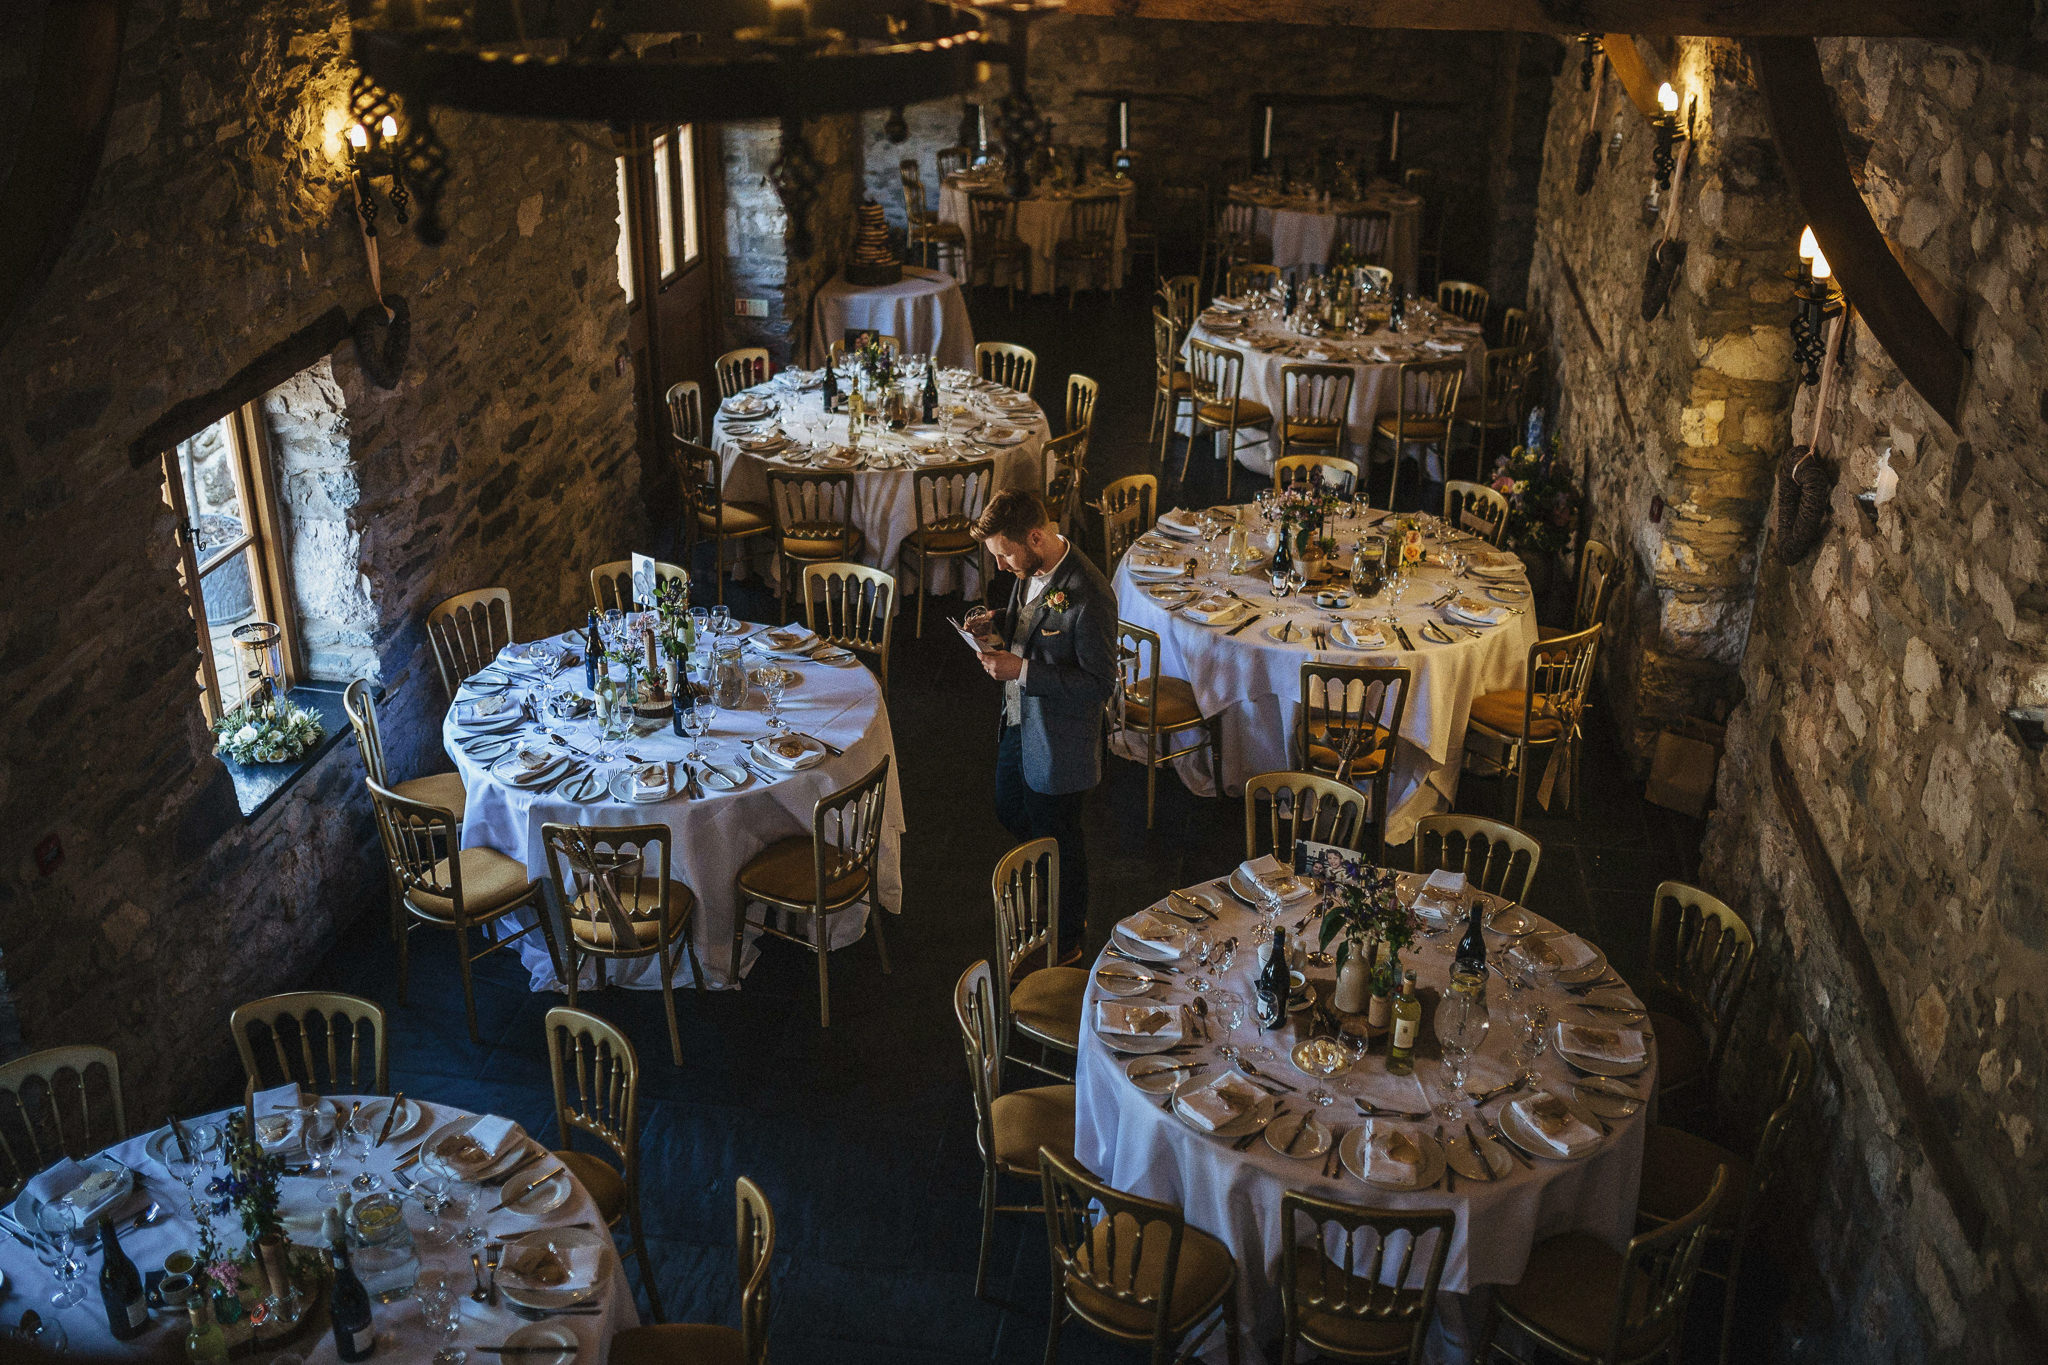 plas-isaf-corwen-north-wales-farm-wedding-photography-photographer-90060